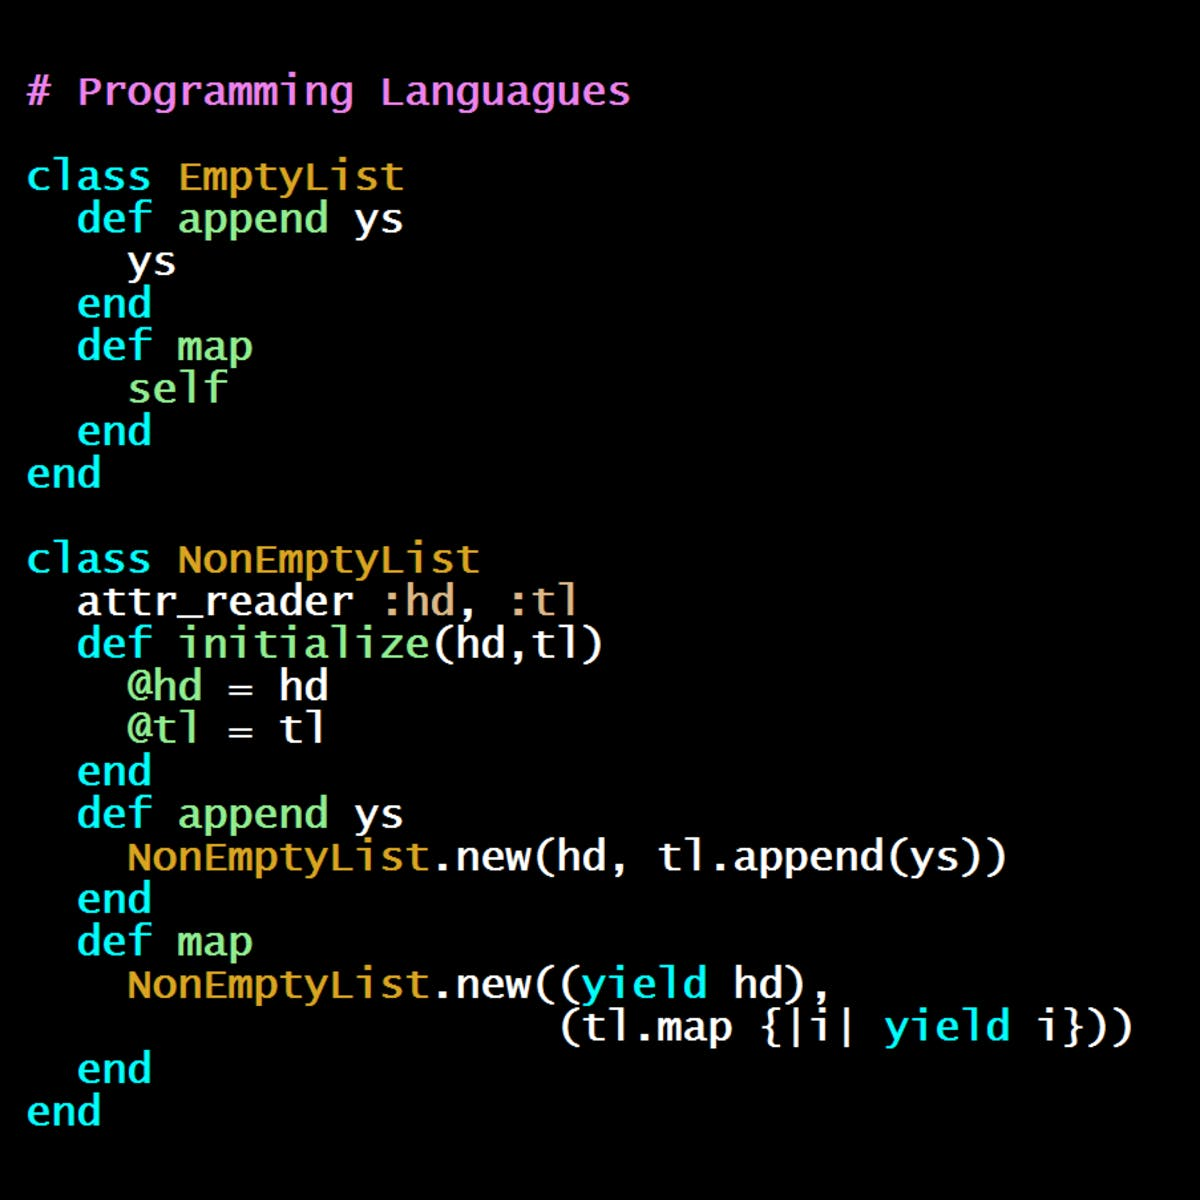 Programming Languages, Part C